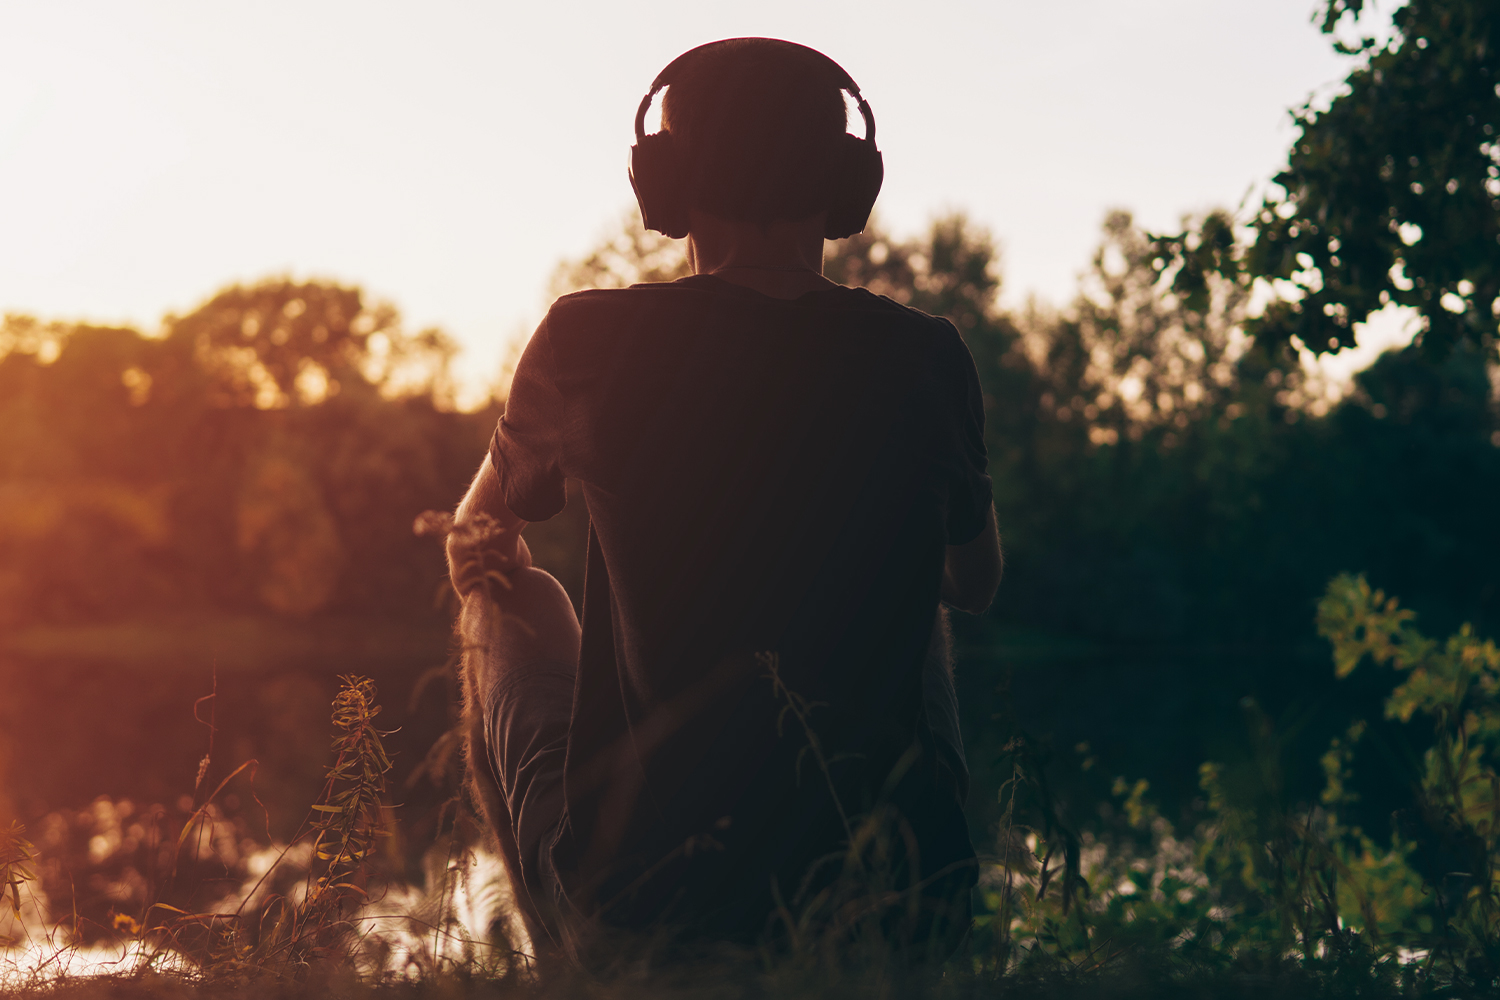 Why Waiting For Inspiration Will Leave You With No Music